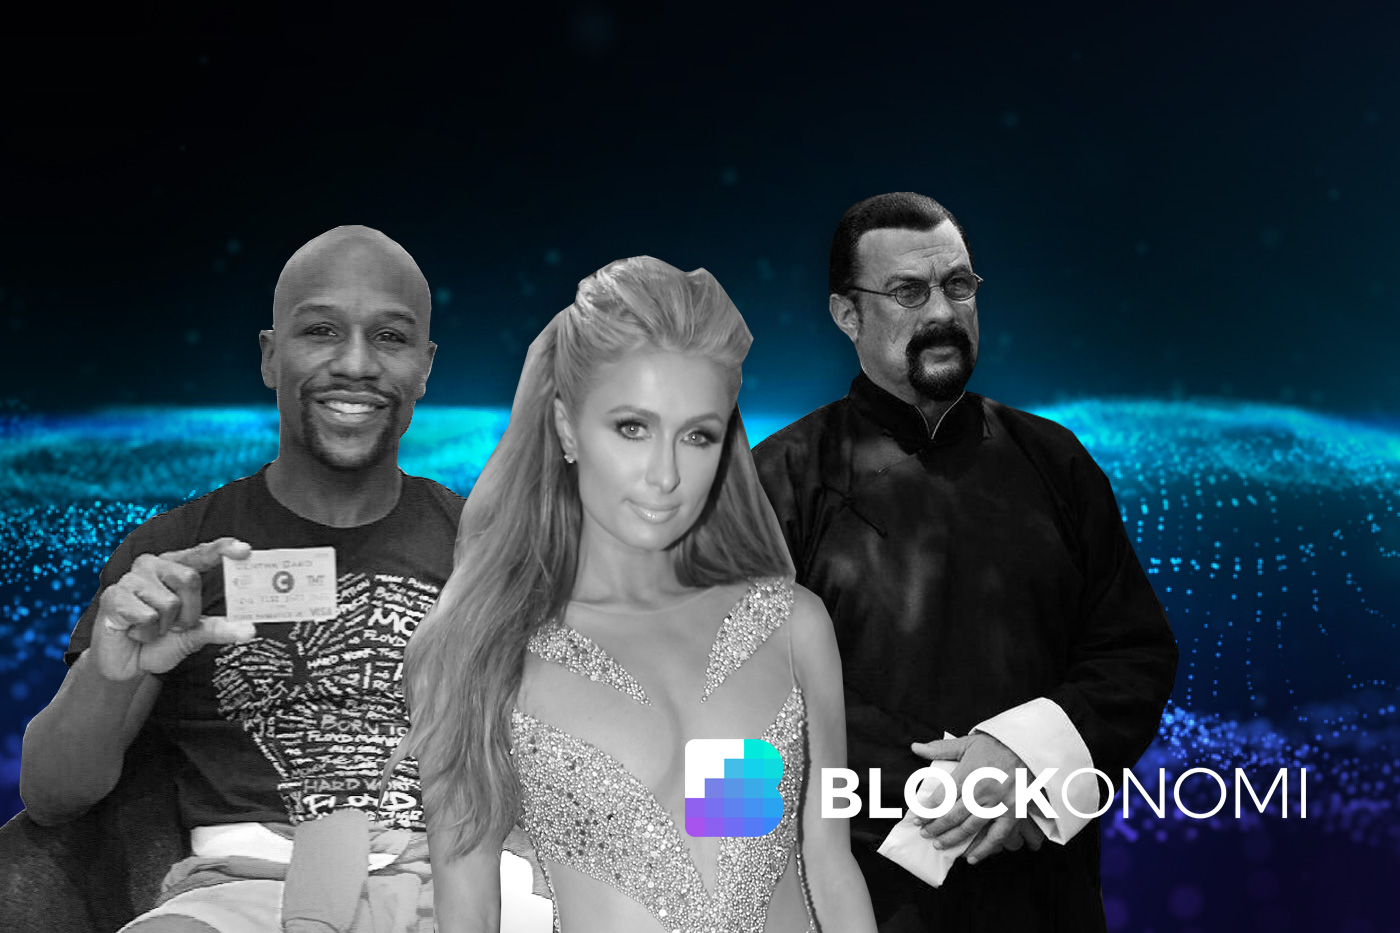 Celebrities Cryptocurrency